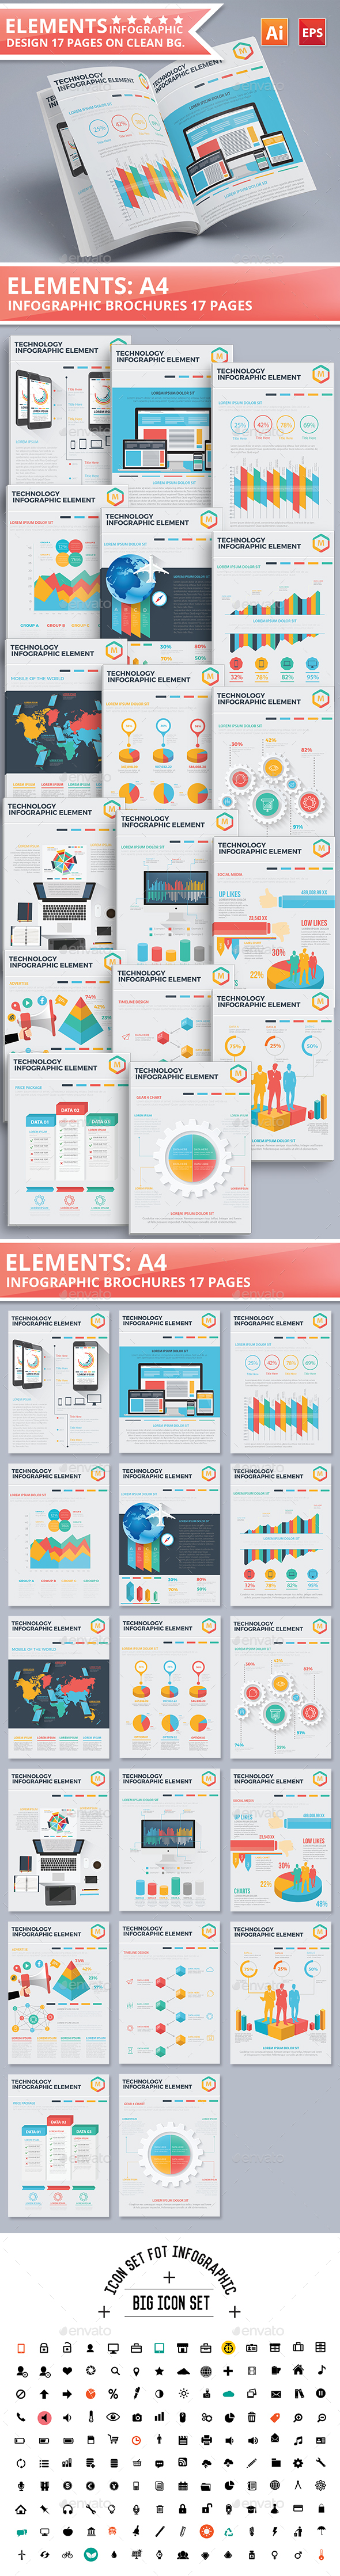 17 Pages Element of Infographic Design - Infographics